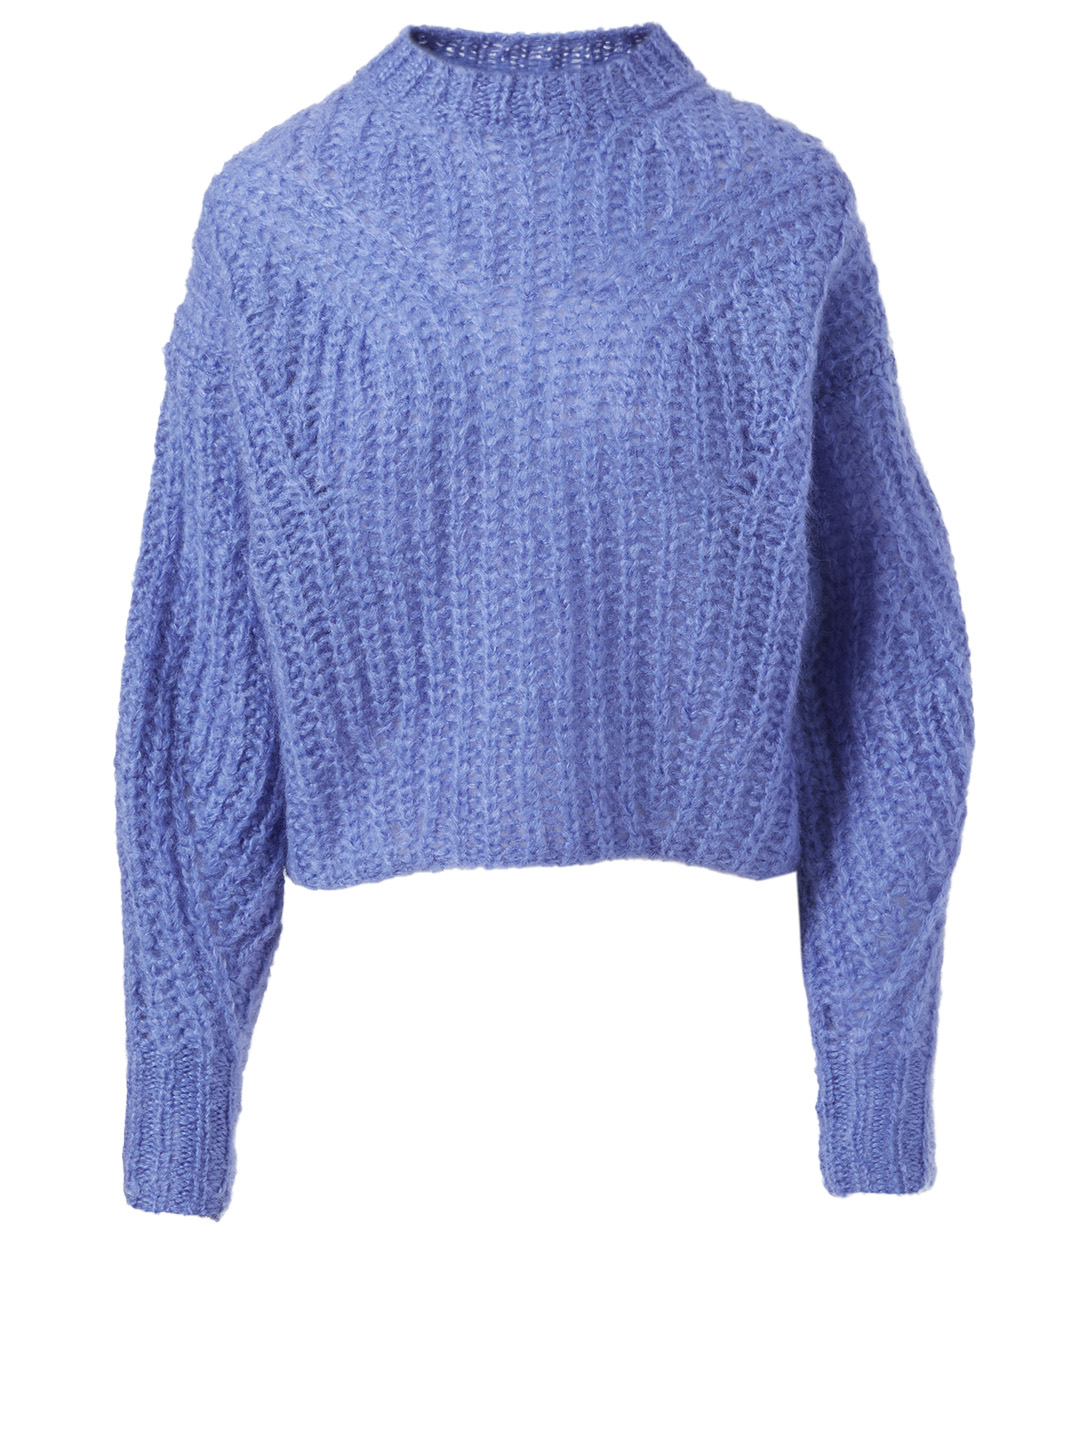 ISABEL MARANT Inko Mohair And Wool Sweater Women's Blue